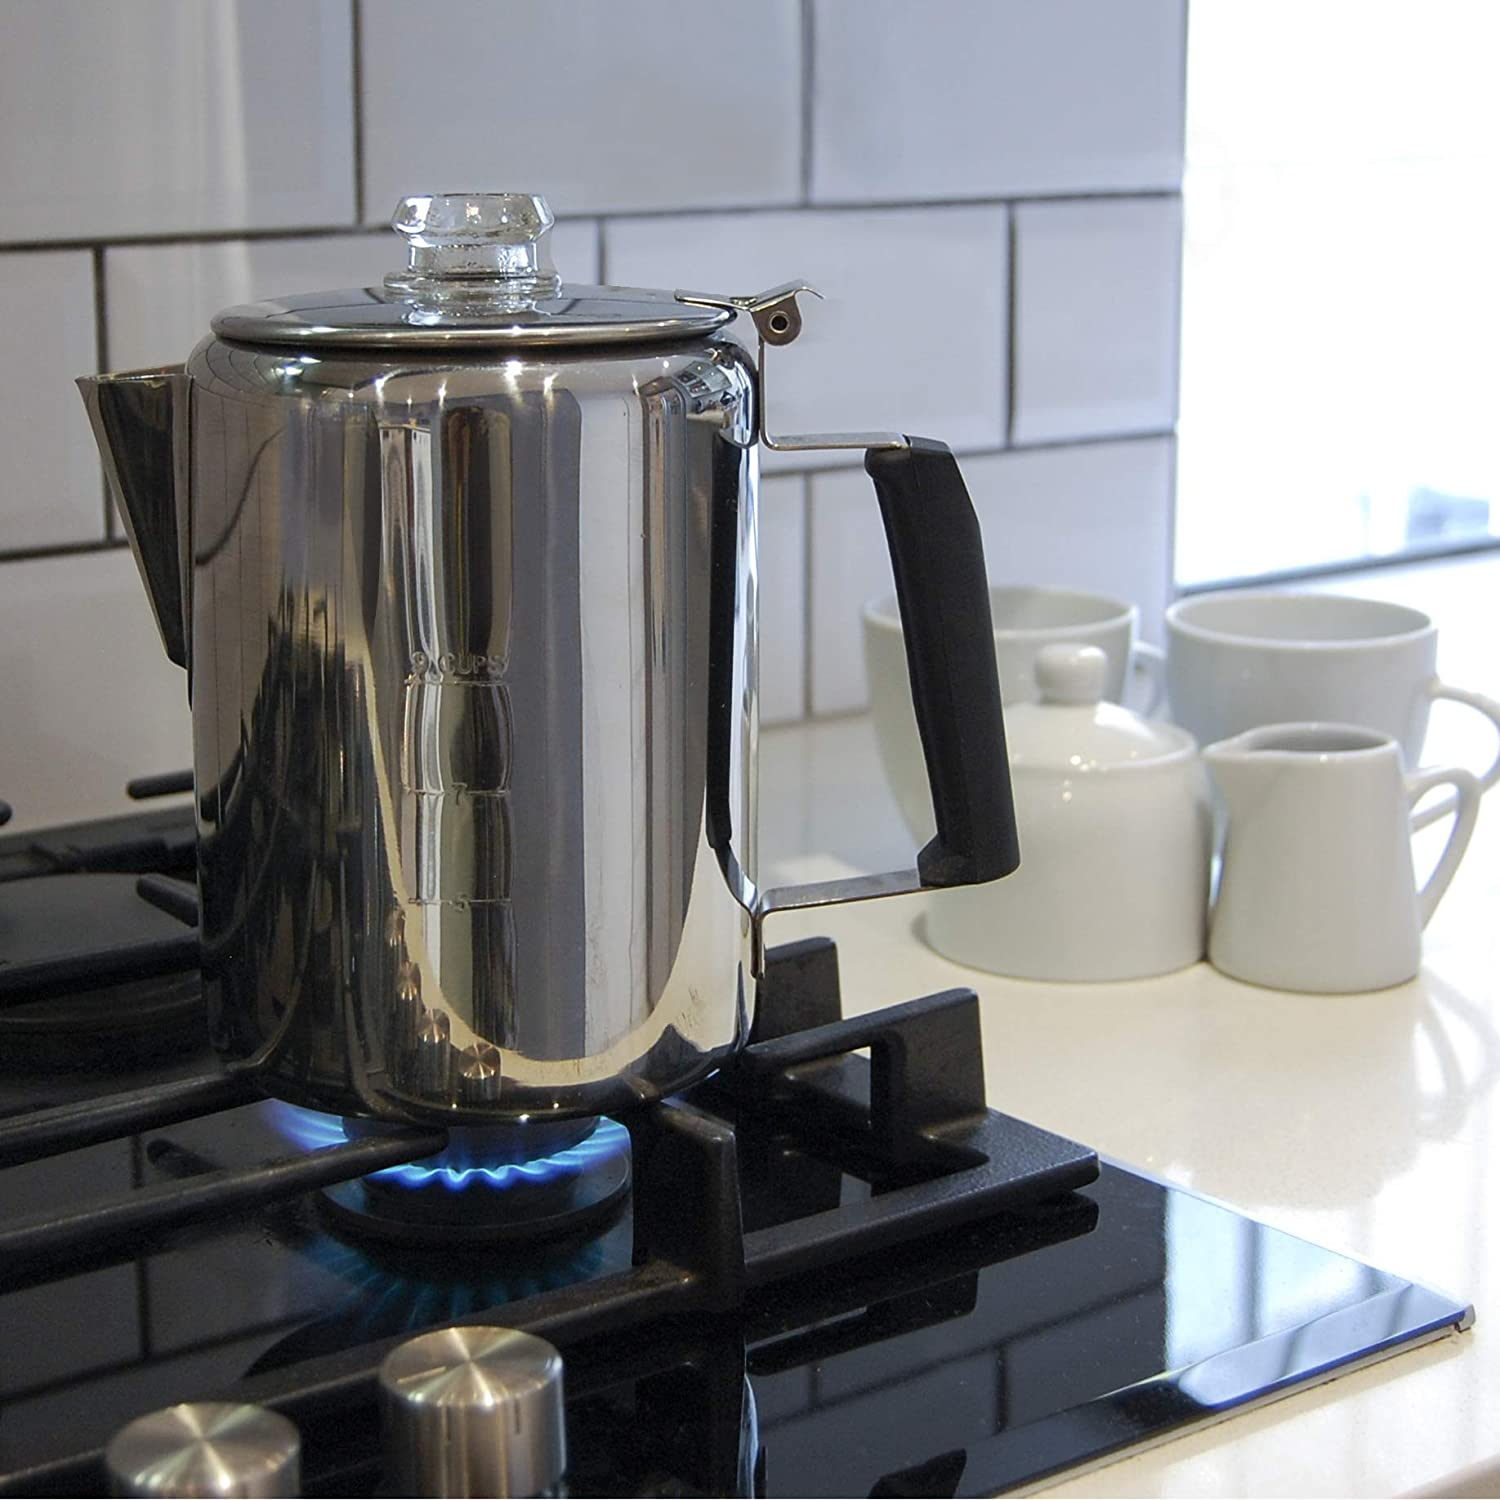 Camping Percolator - Our Camp Percolator Coffee Pot for Outdoor Cookware - 9 Cup Stainless Steel Coffee Maker for Cabin and RV Kitchen Stovetop Too